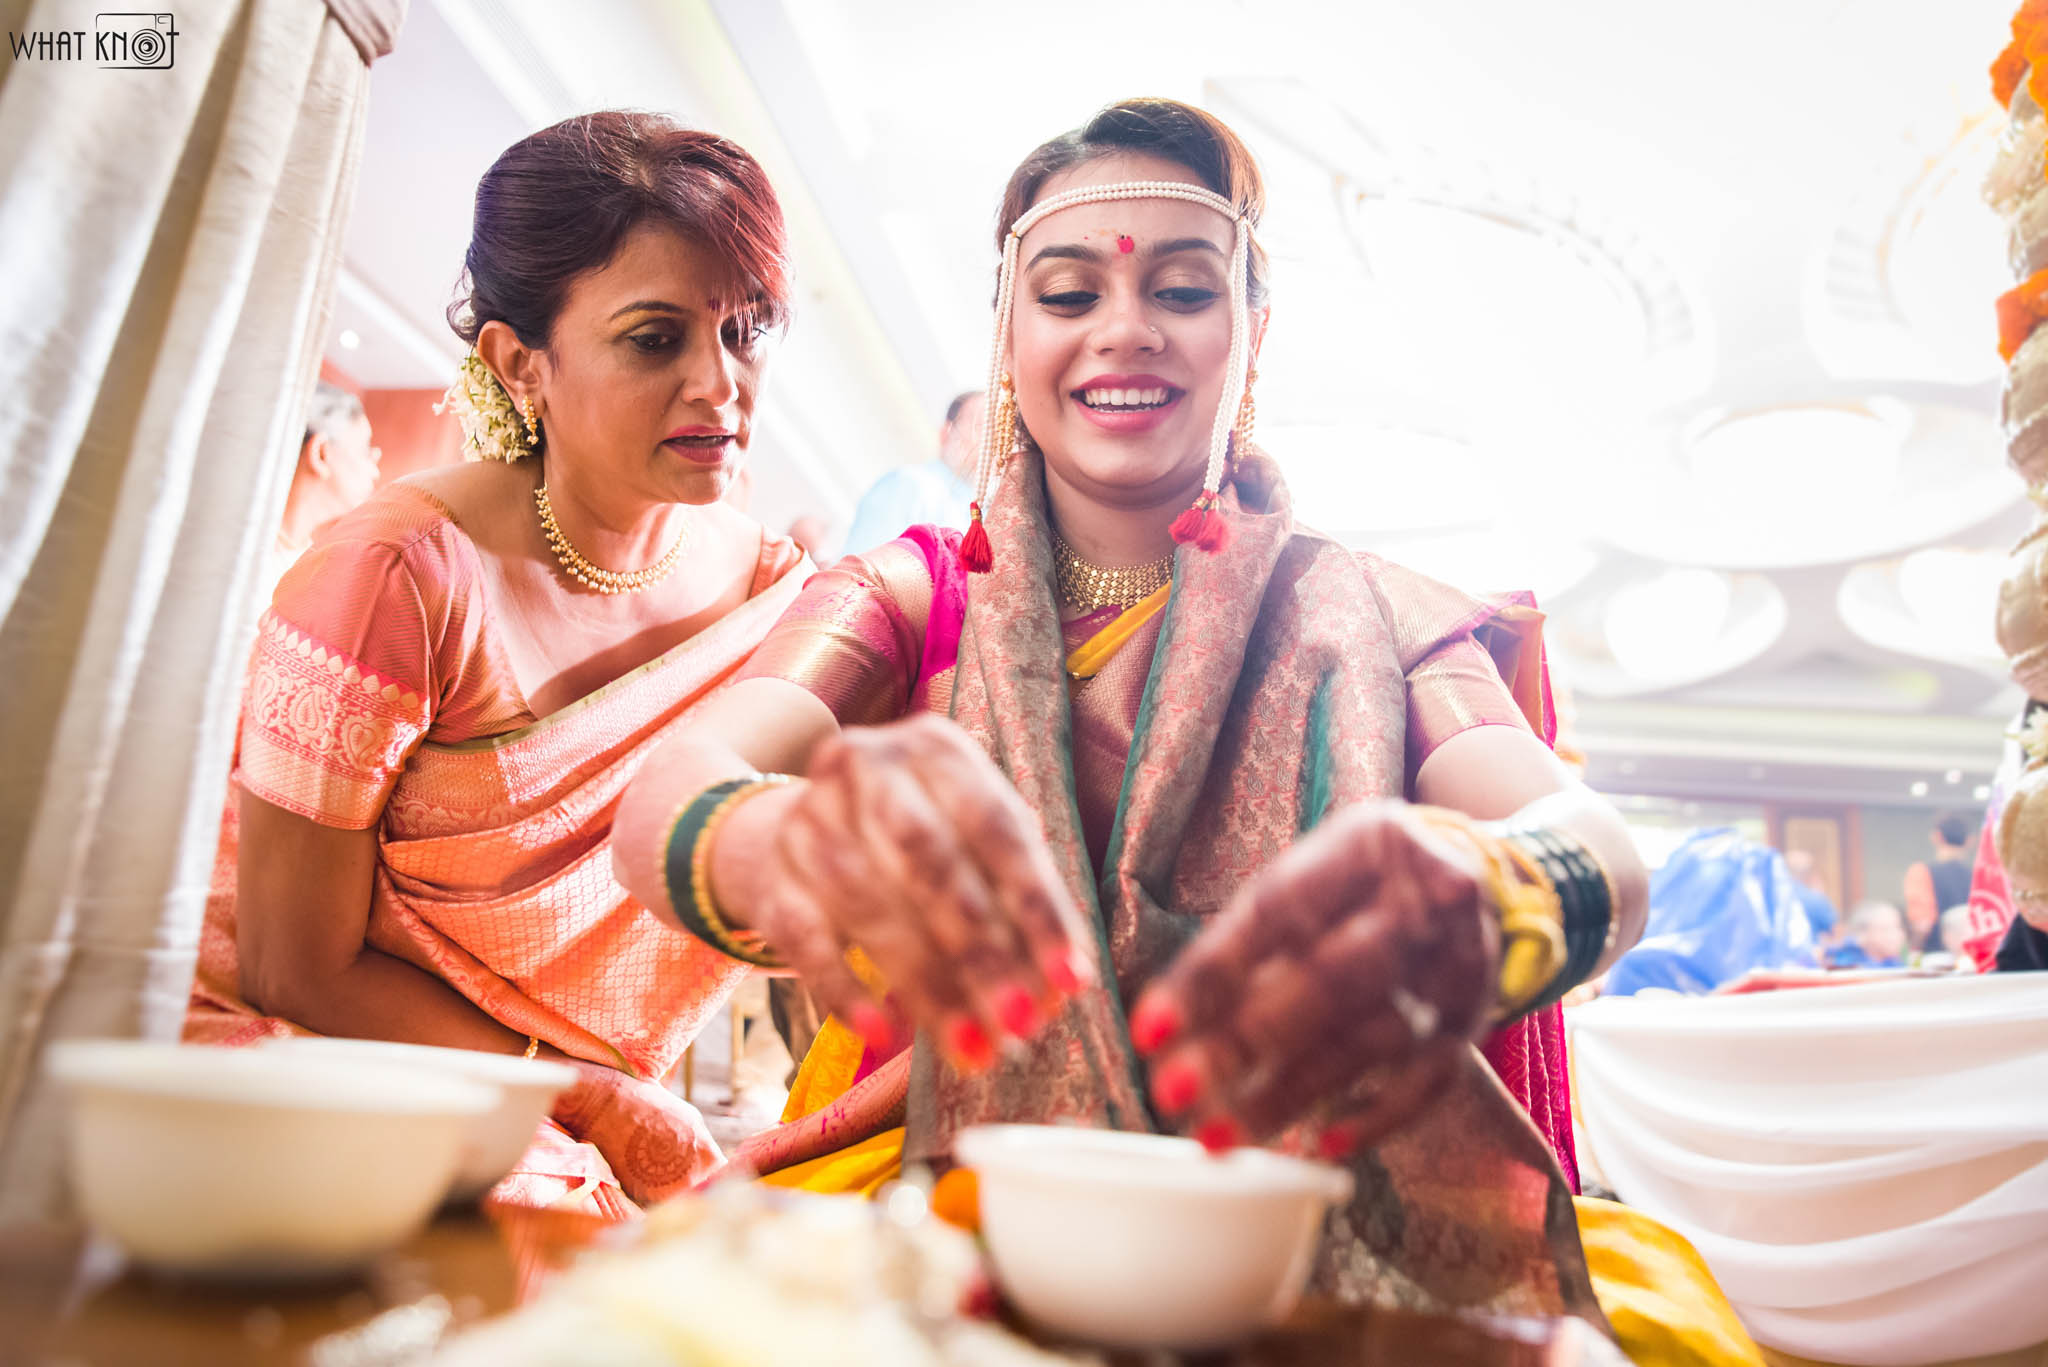 Candid-Wedding-Photography-WhatKnot-Marathi-148